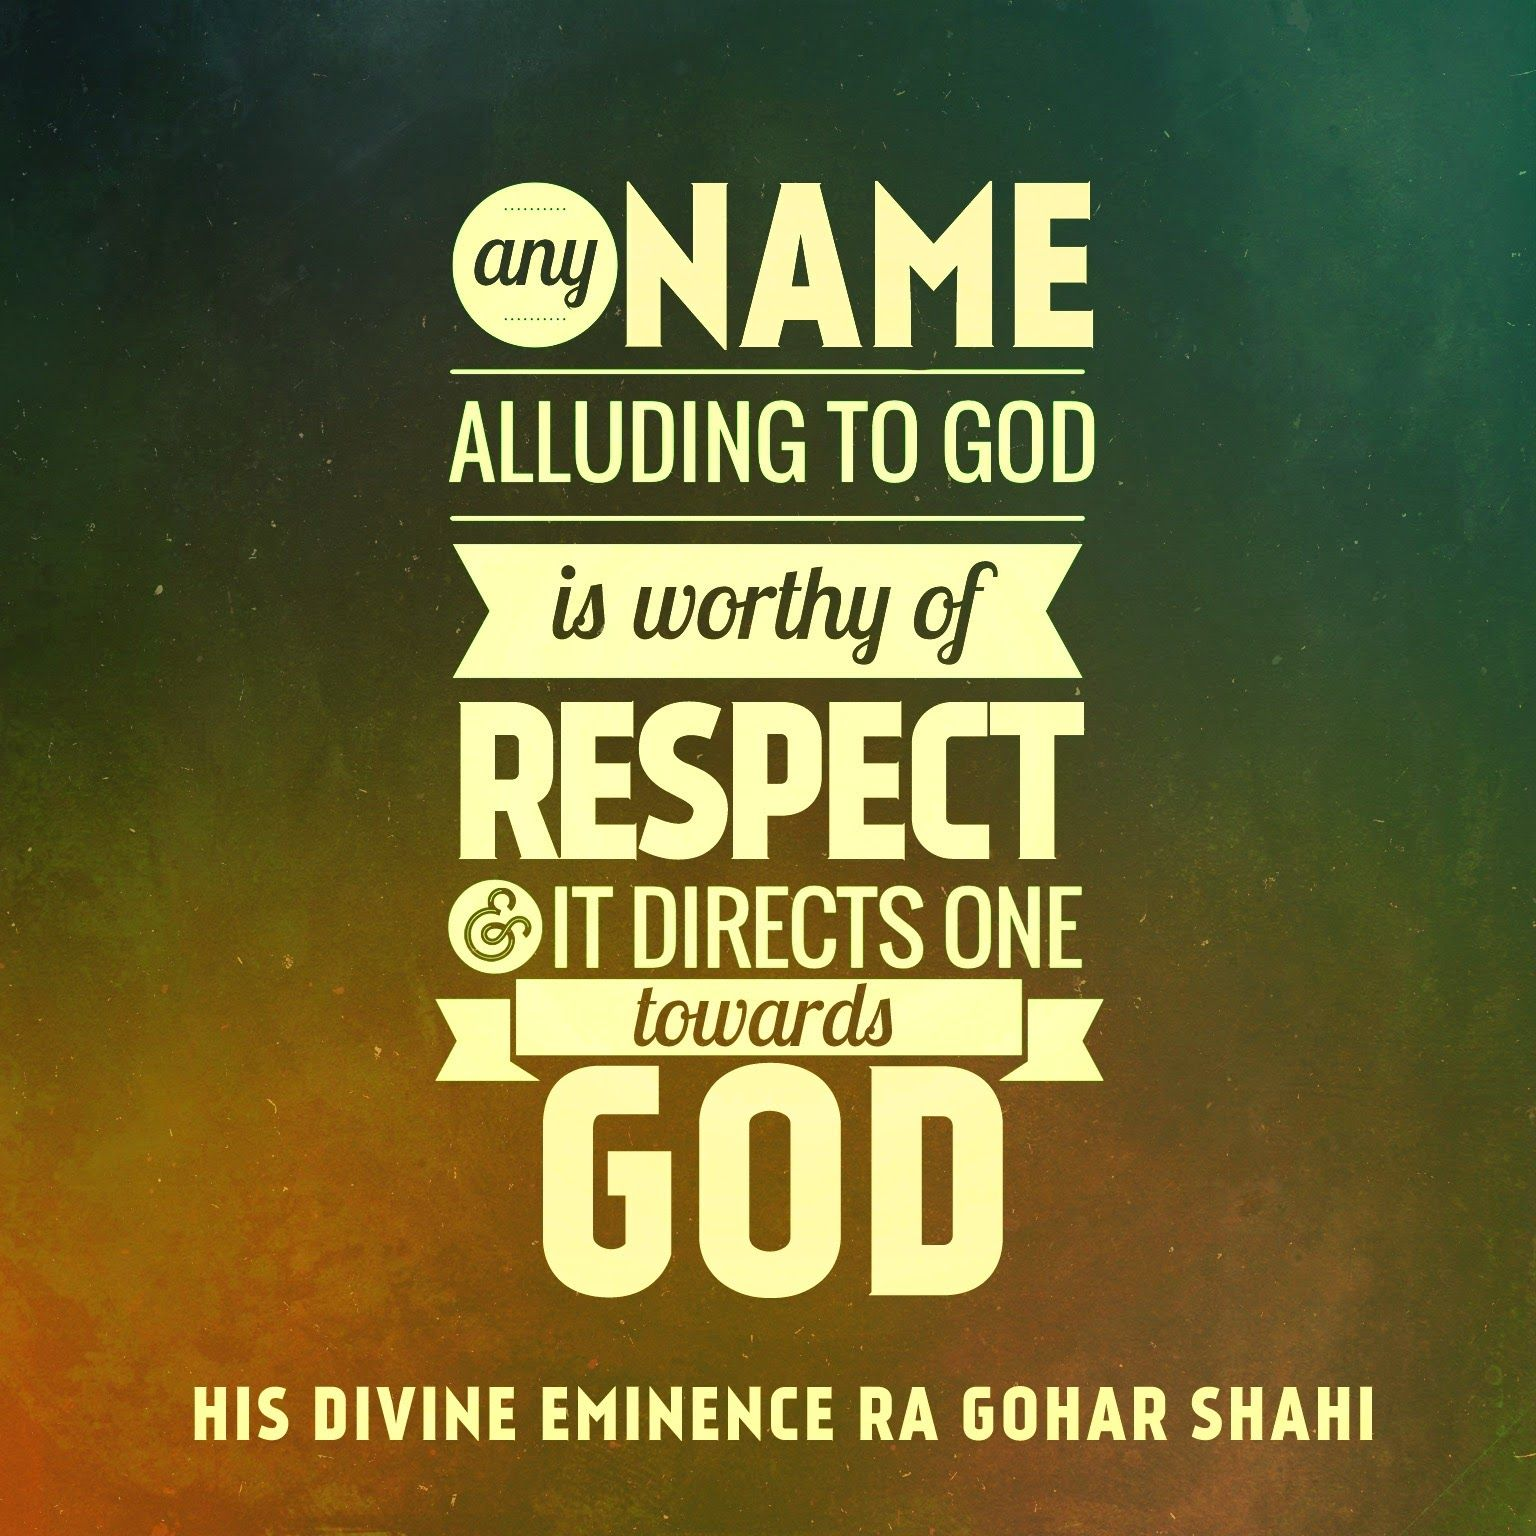 Lovely Todayu0027s Quote Is From The Religion Of God (Divine Love) By His Divine  Eminence RA Gohar Shahi. U0027Any Name Alluding To God Is Worthy Of Respect And  It Directs ...